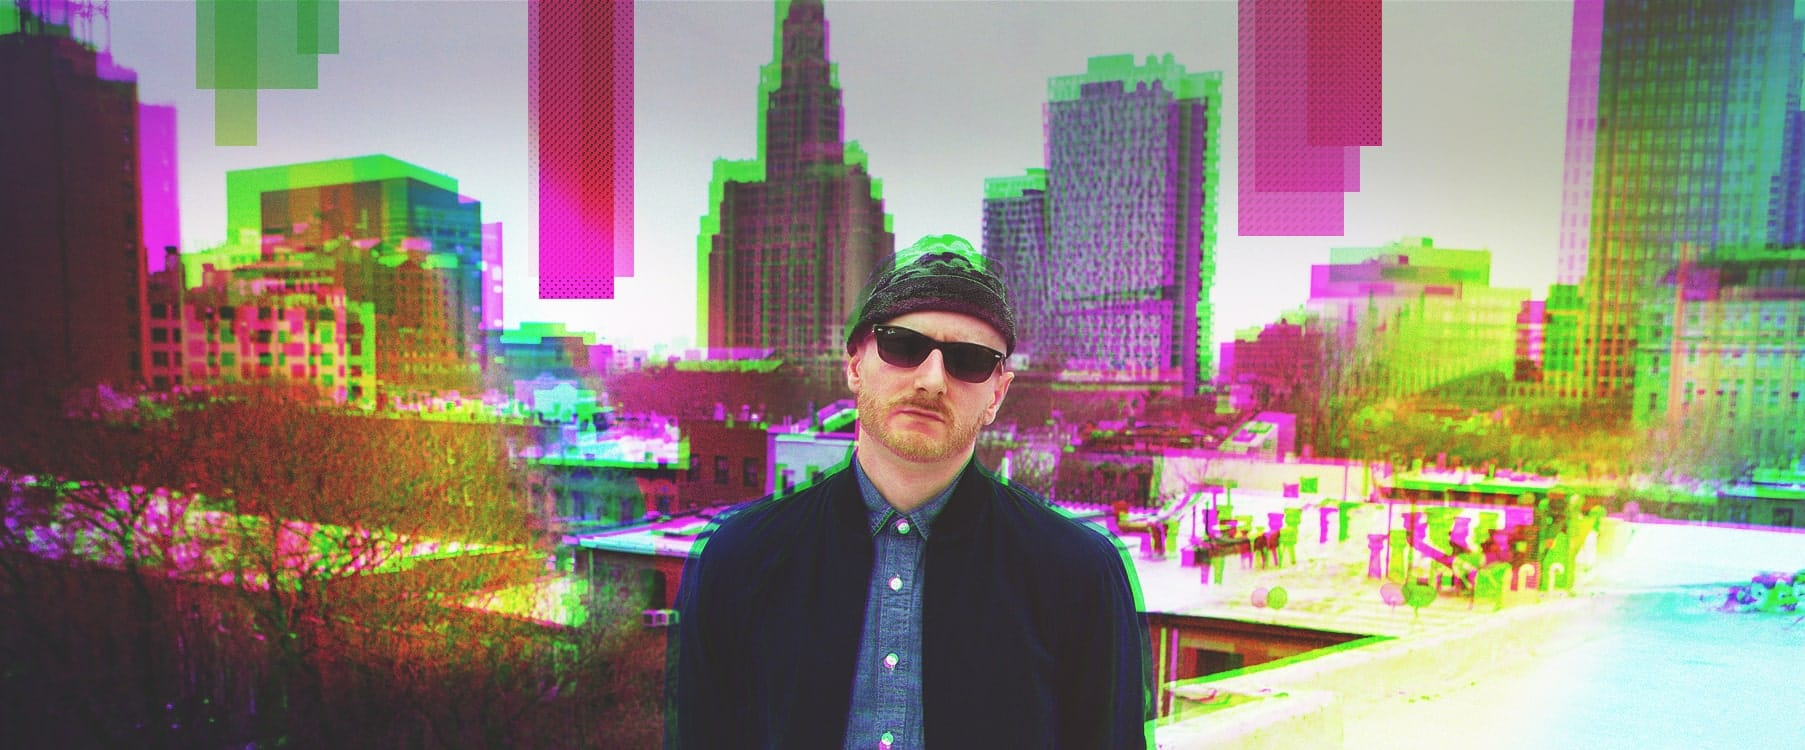 Technicolor Hip-Hop — Marco Polo Adds Character and Dimension with UAD